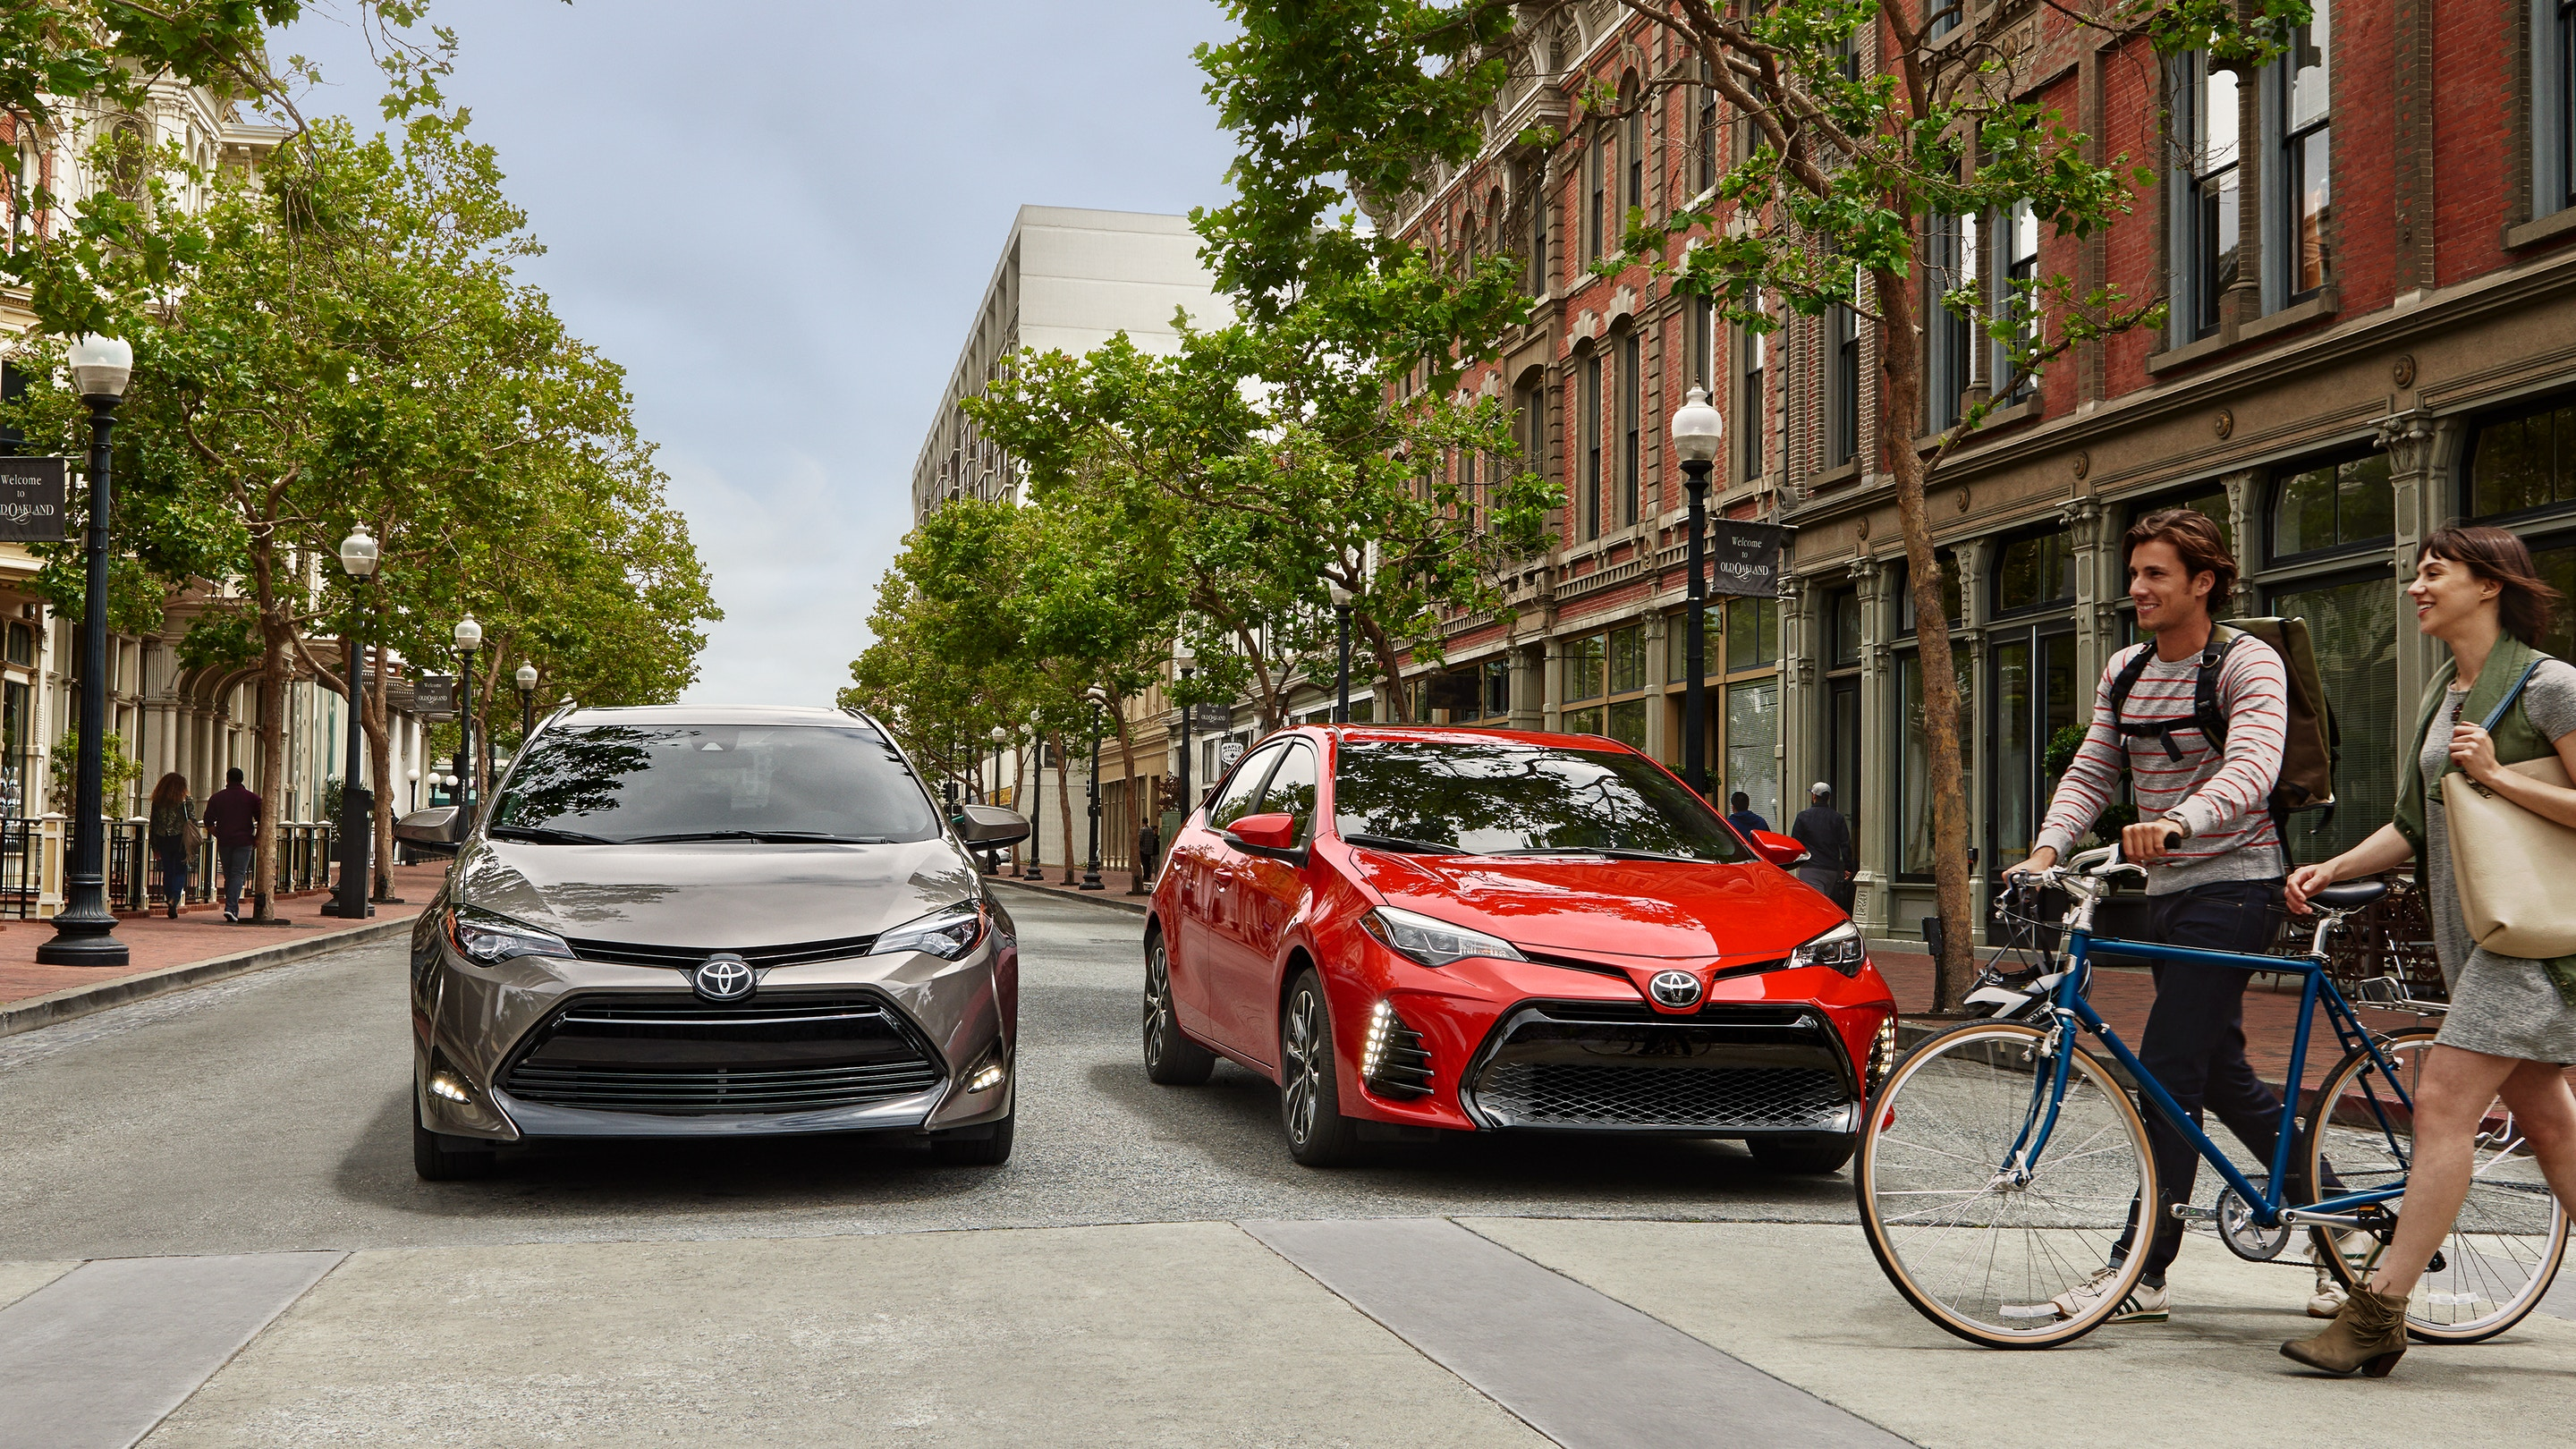 2019 Toyota Corolla vs 2019 Hyundai Elantra in New Castle, DE